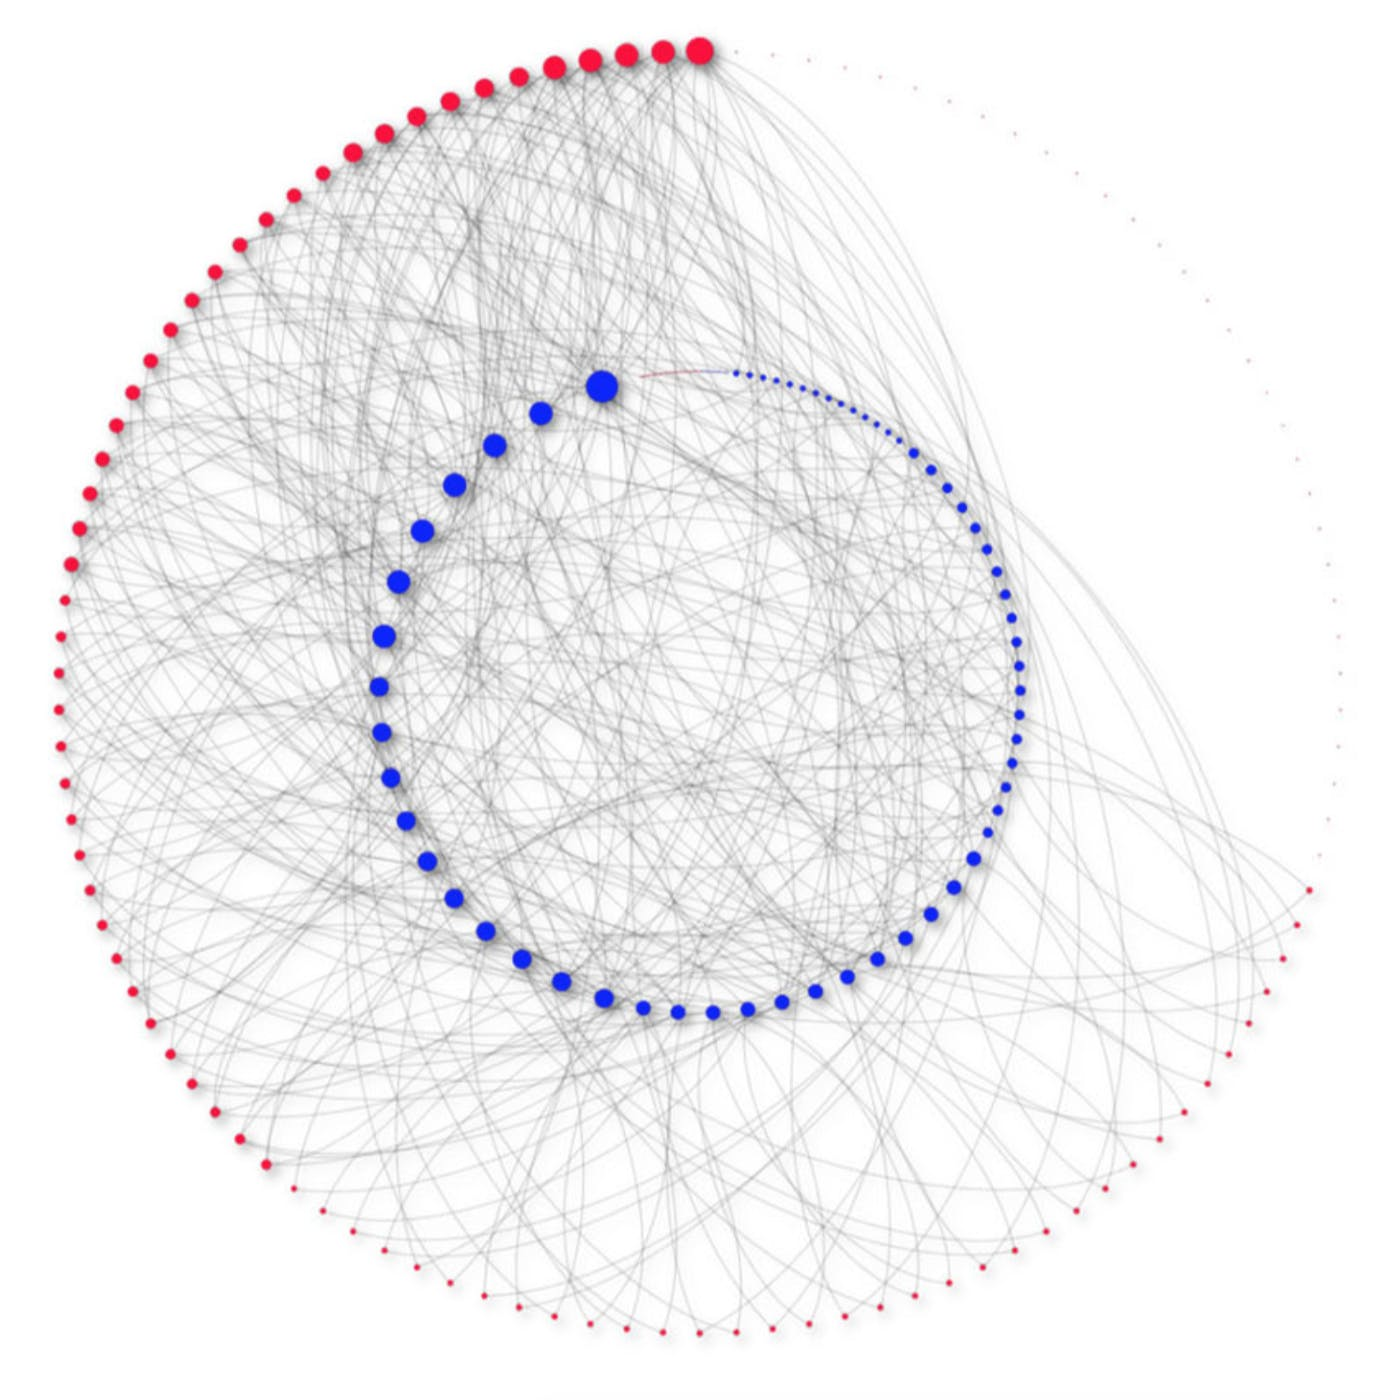 The temporal bipartite target network.